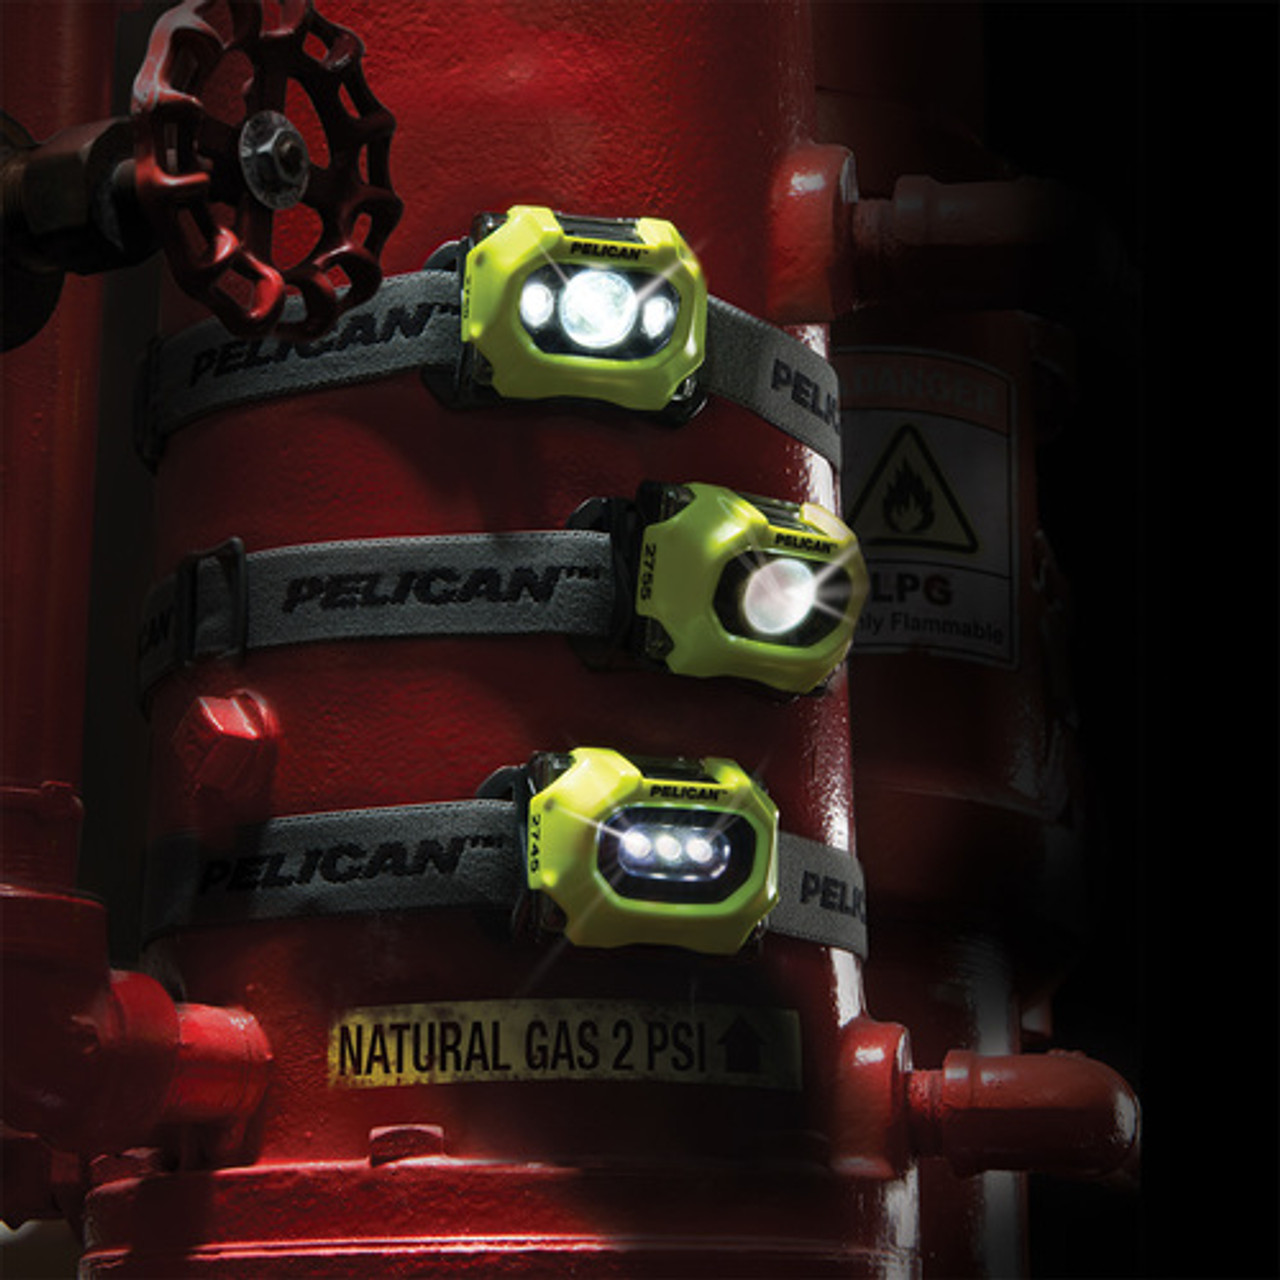 Pelican LED Headlamp, Night vision, Comfortable Cloth Strap, Full Time Battery Level Indicator, Weather Resistant, Available in Black or High Visibility Yellow, 2765